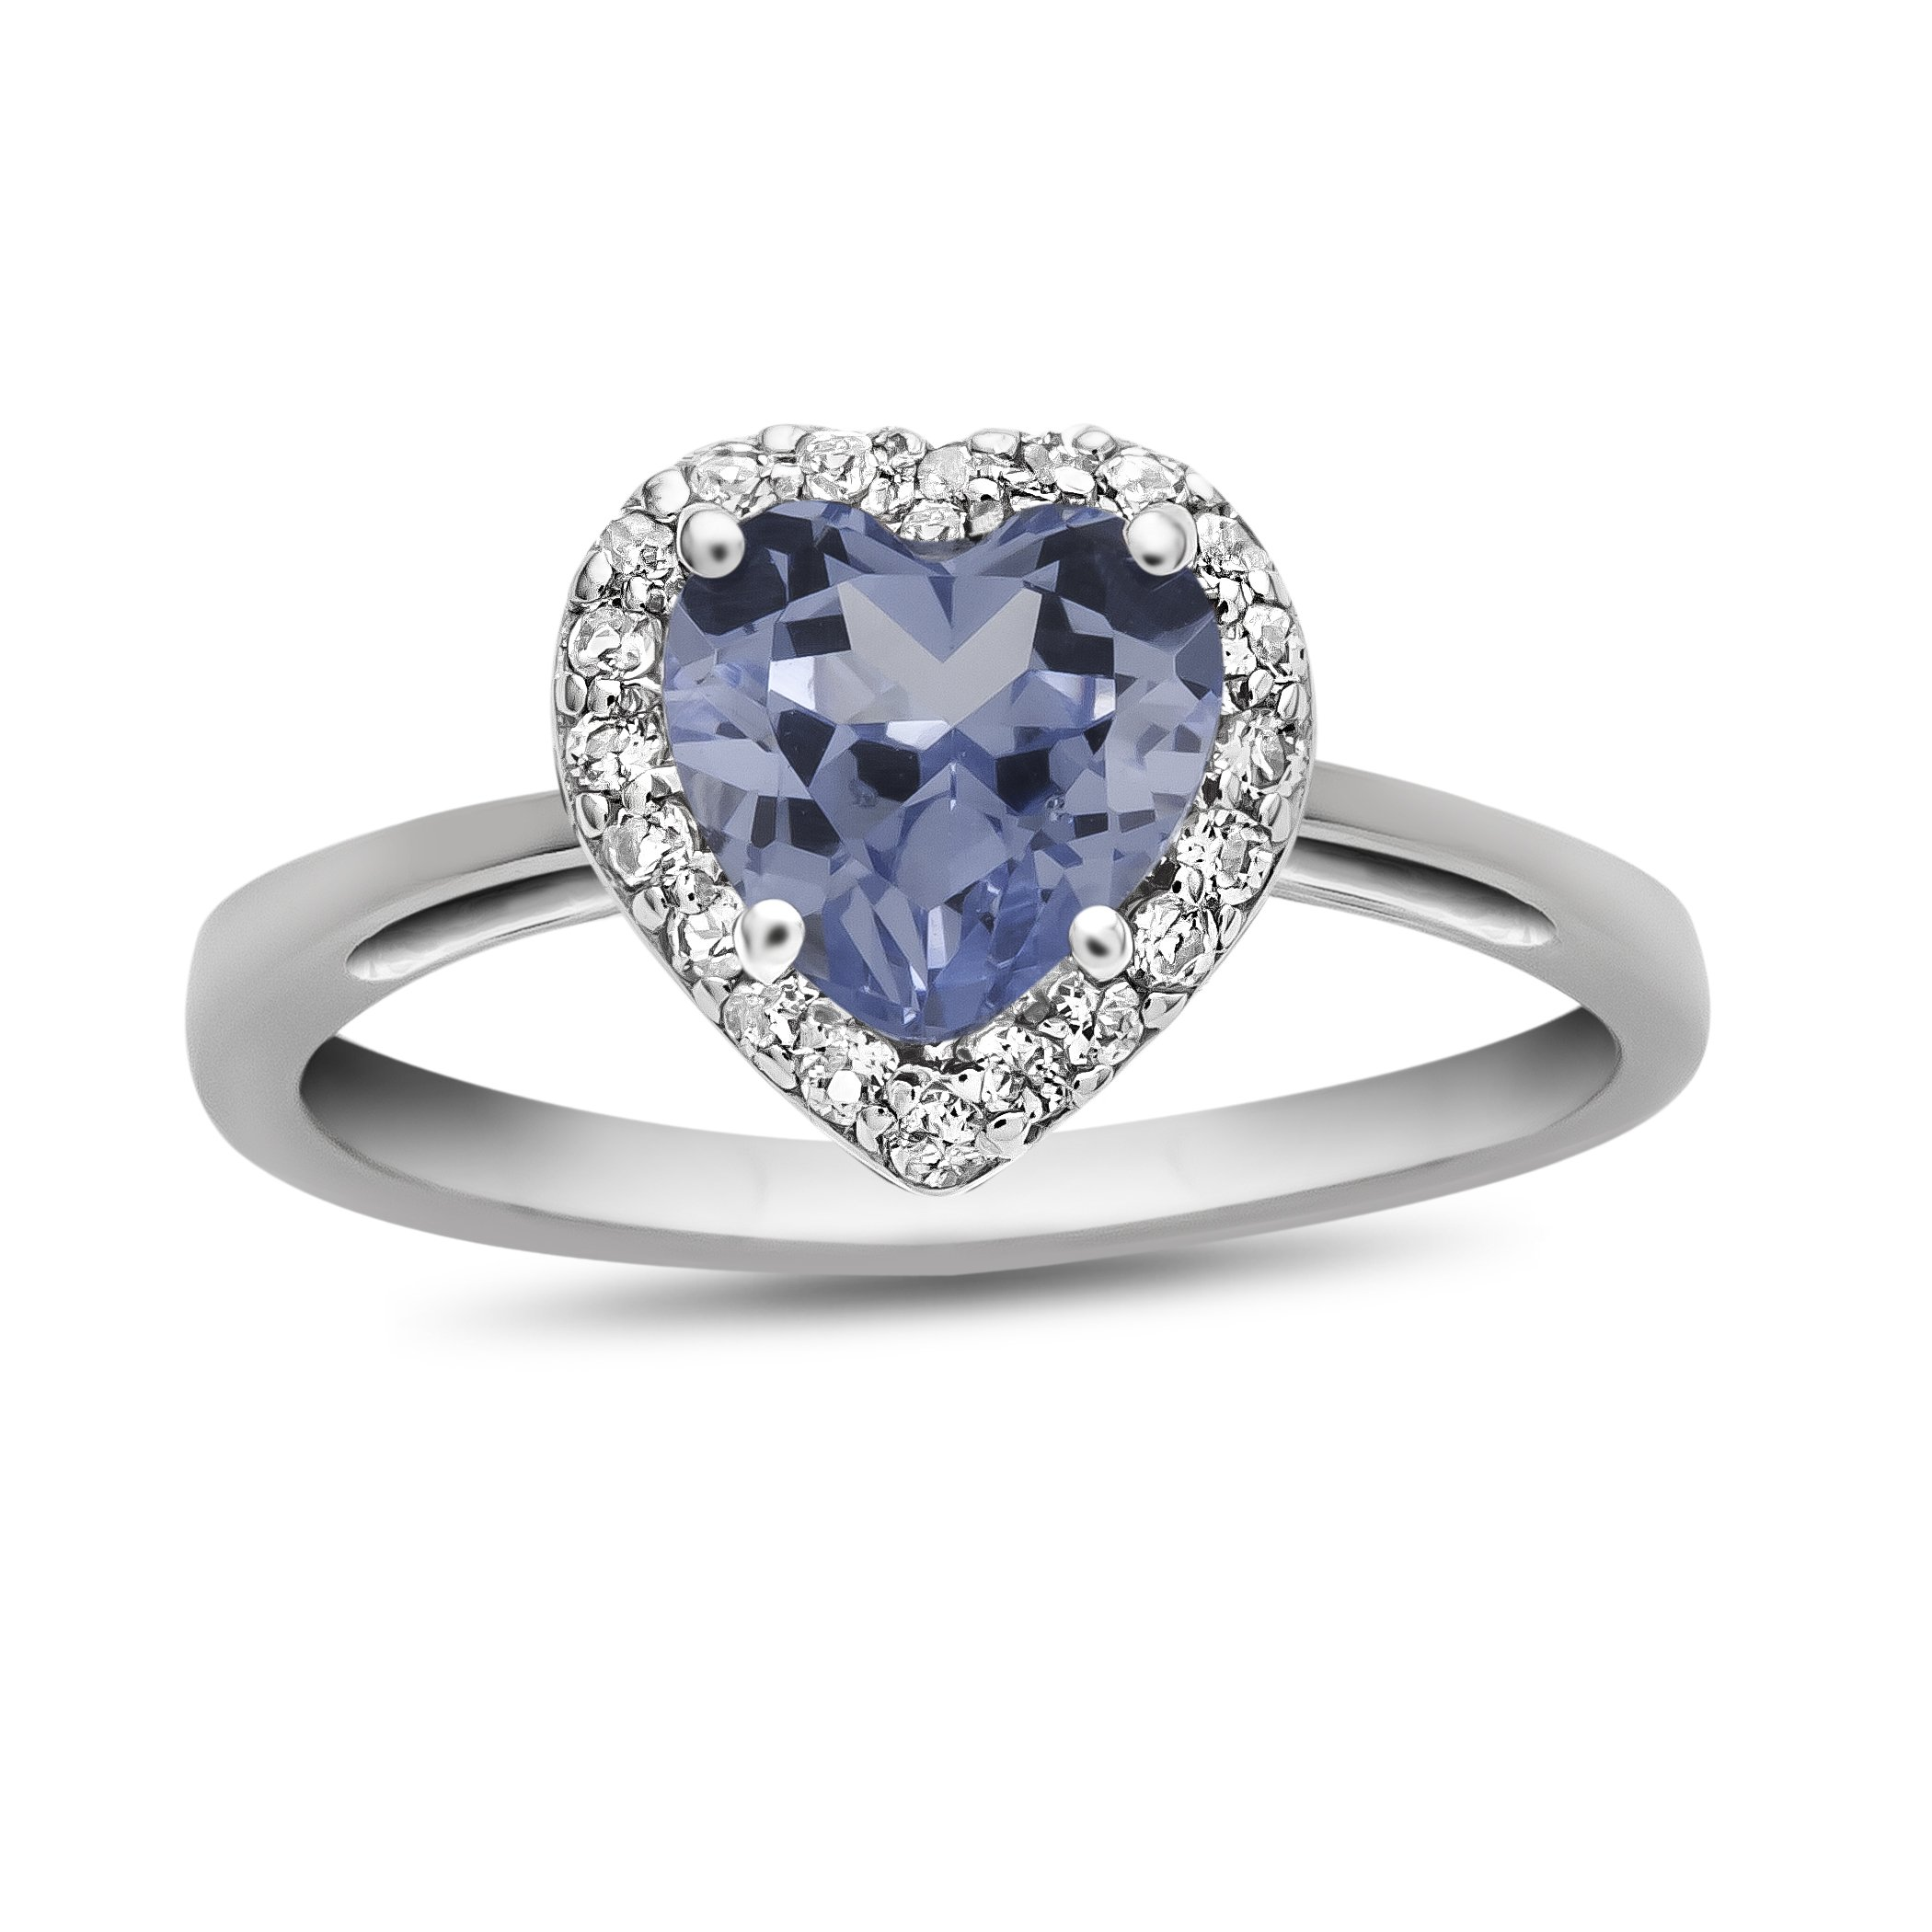 10k White Gold 6mm Heart Shaped Simulated Aquamarine with White Topaz accent stones Halo Ring Size 8